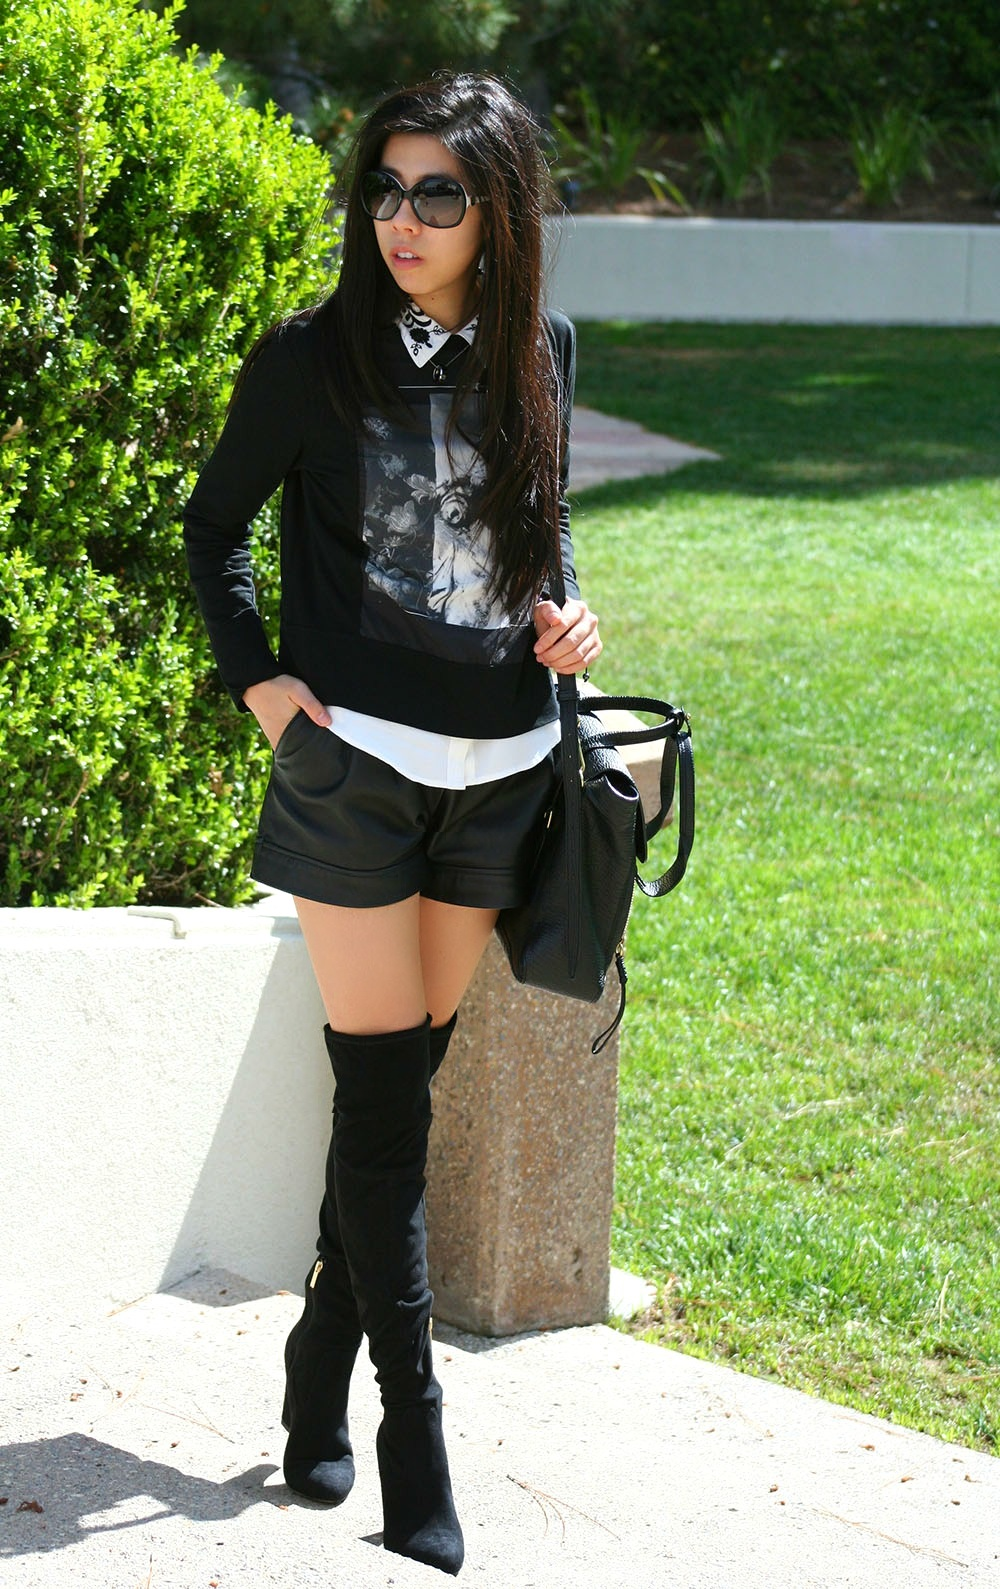 Zara Pullover_Black Grunge Look_AllBlack Everyday Casual Look_What I wear to School_Adrienne Nguyen_Invictus